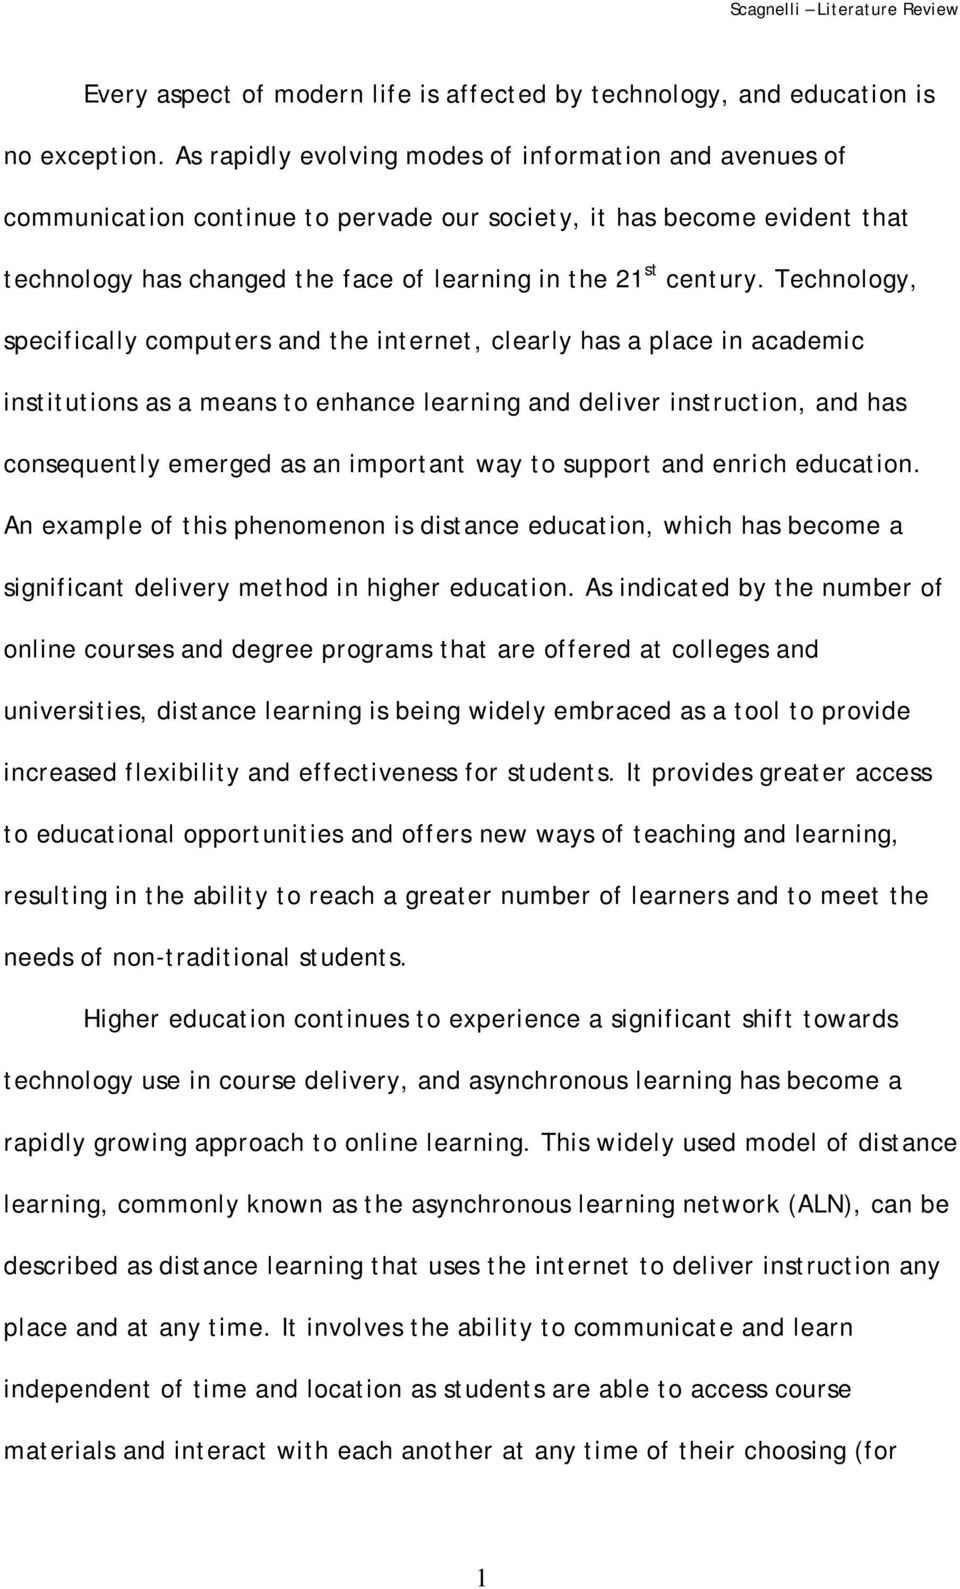 Technology, specifically computers and the internet, clearly has a place in academic institutions as a means to enhance learning and deliver instruction, and has consequently emerged as an important